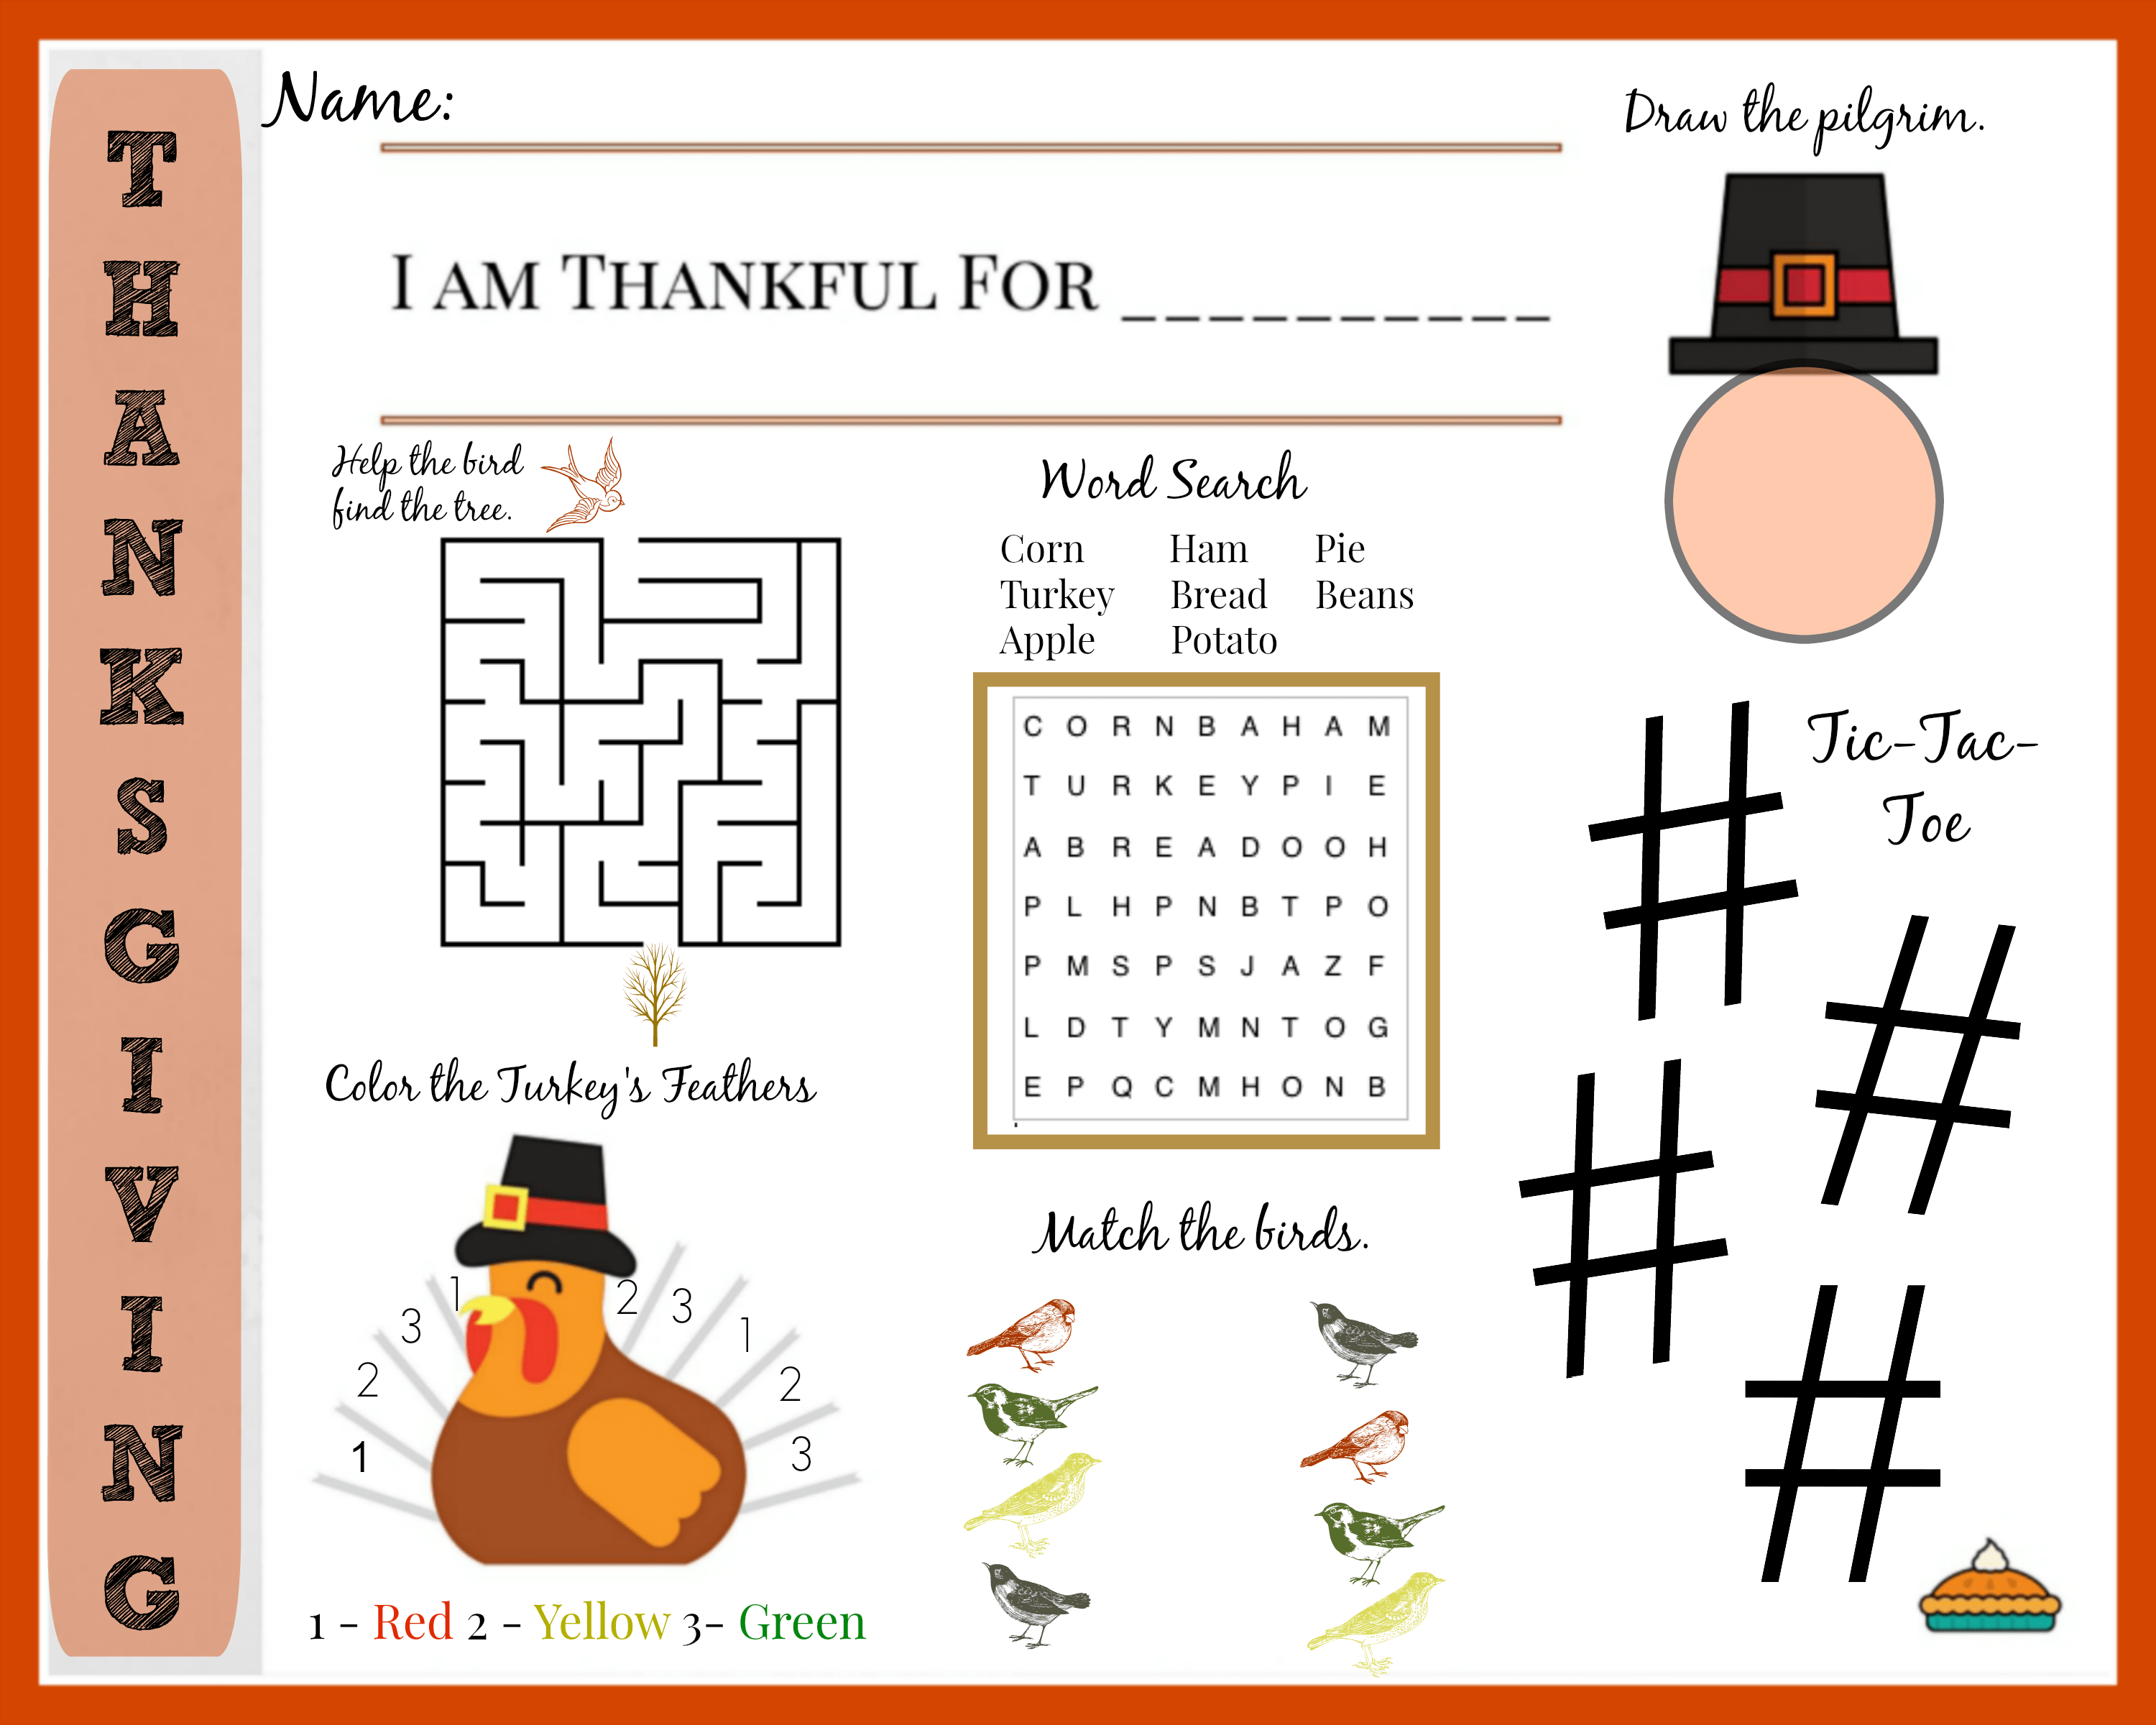 photo relating to Free Printable Thanksgiving Placemats known as Printable Thanksgiving Placemat for Young children with Enjoyment Plans for